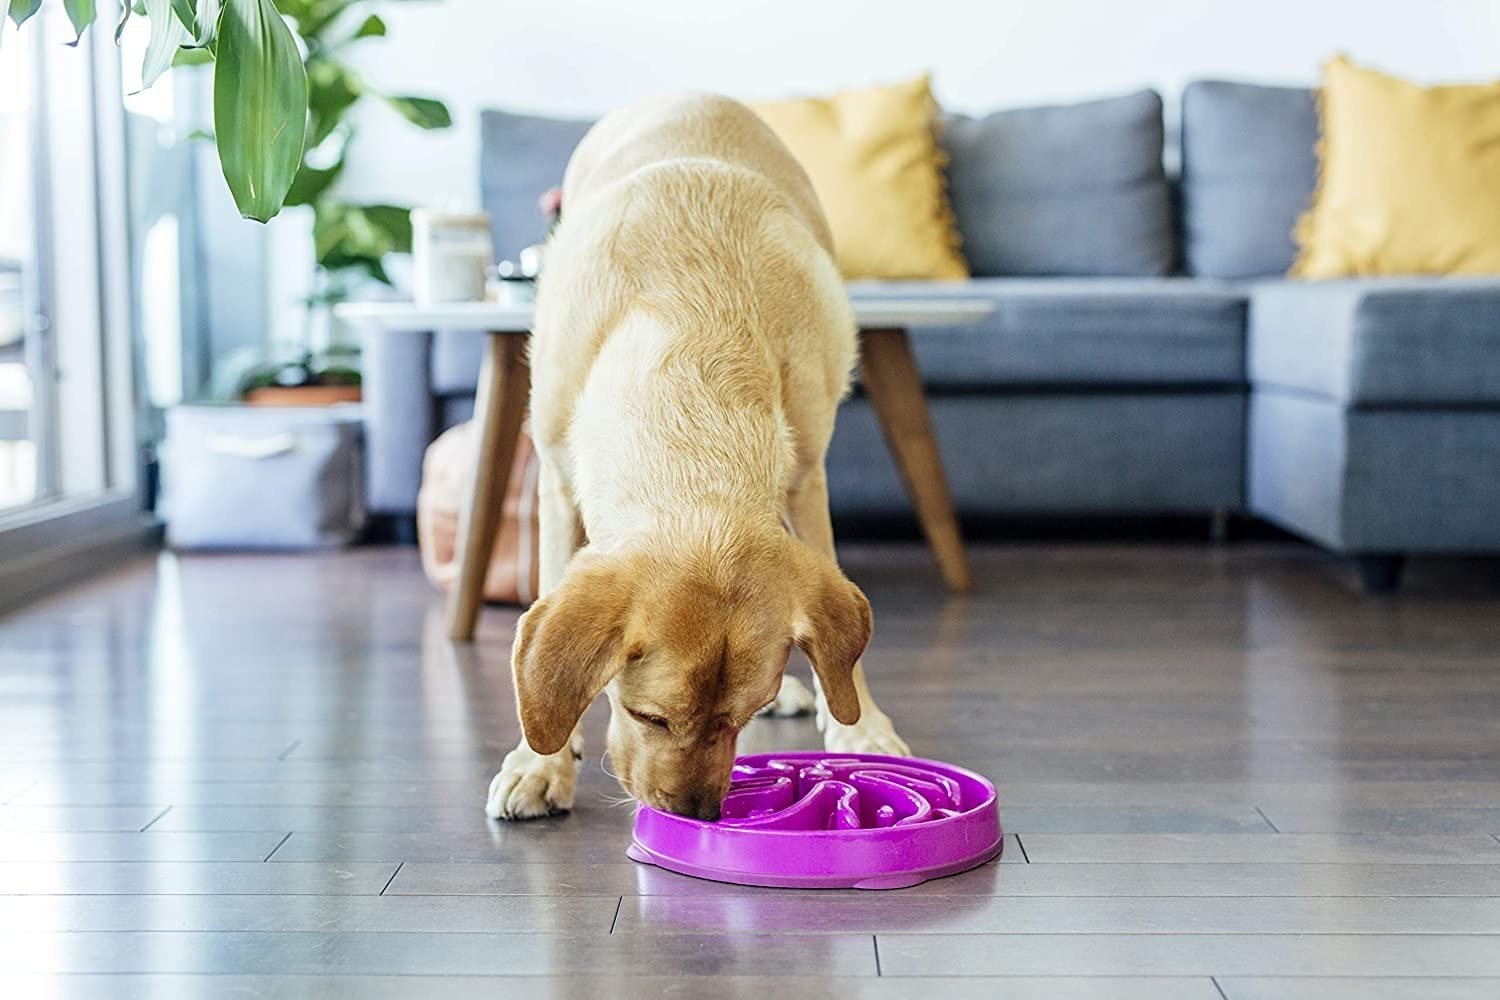 A dog eating from the puzzle bowl